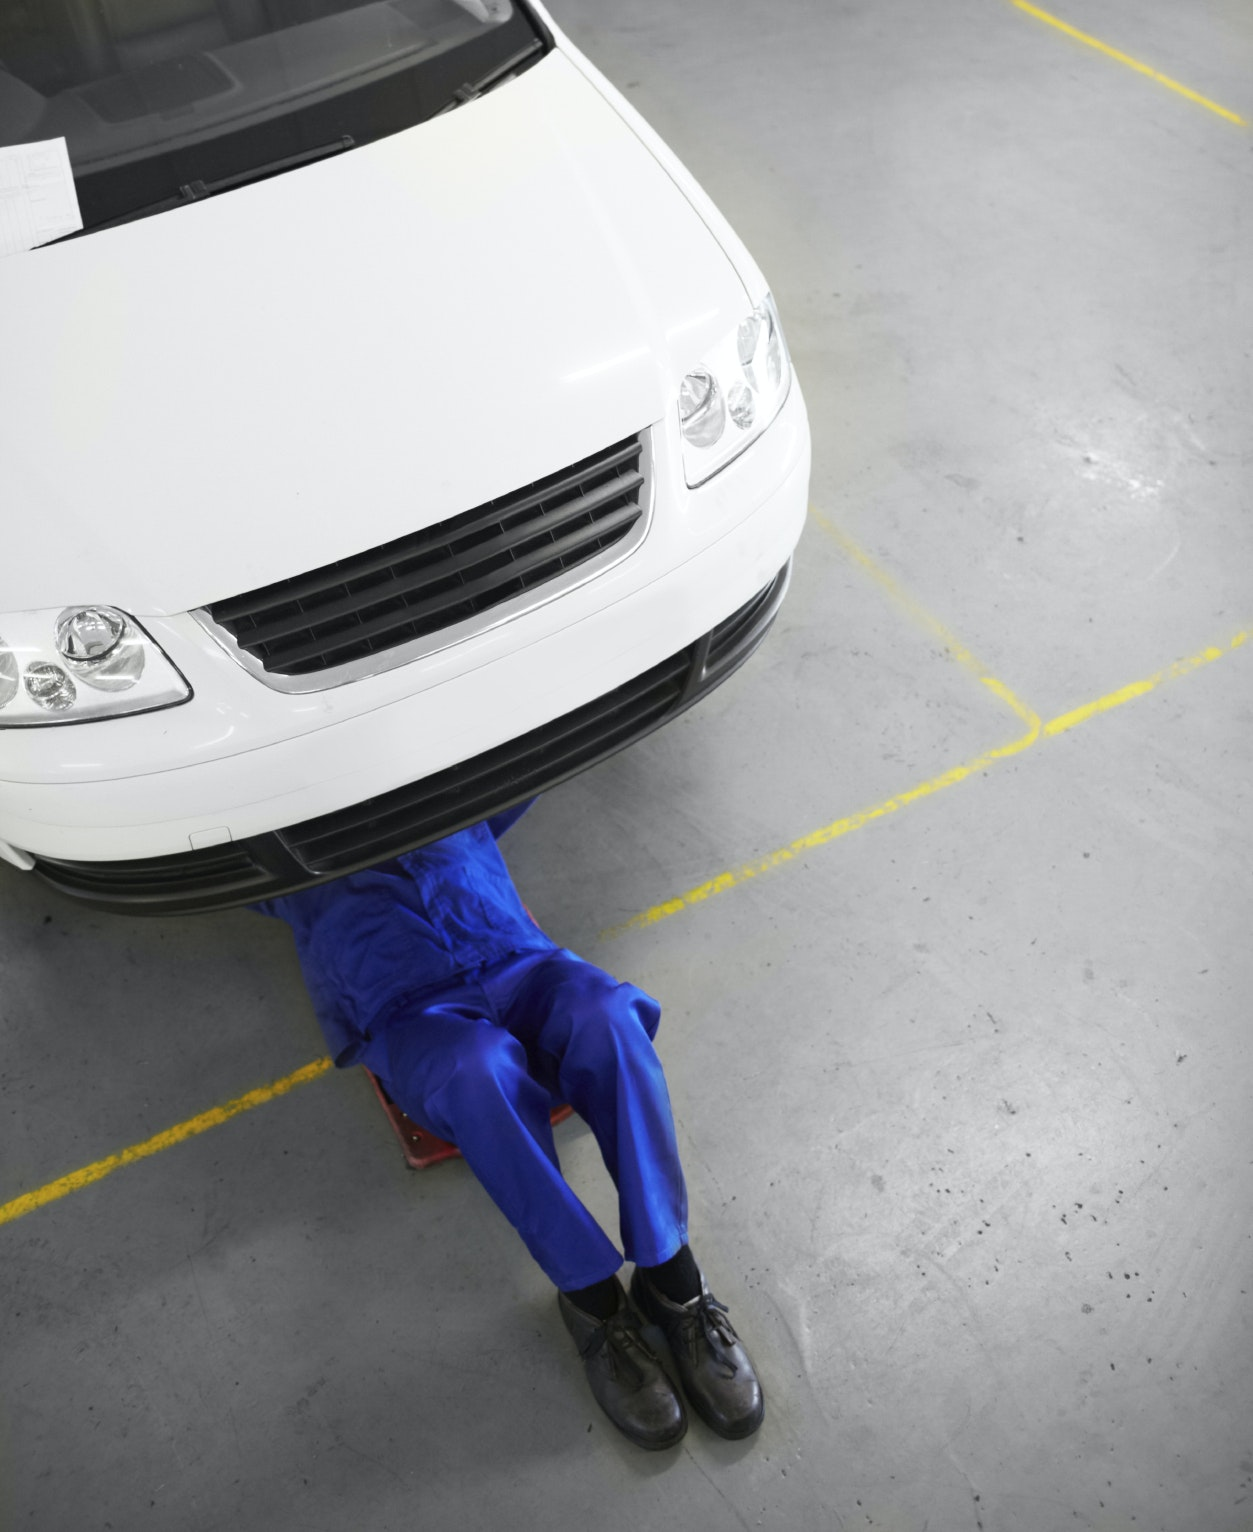 Anxious About Buying a Used Car? Get a Mechanical Inspection